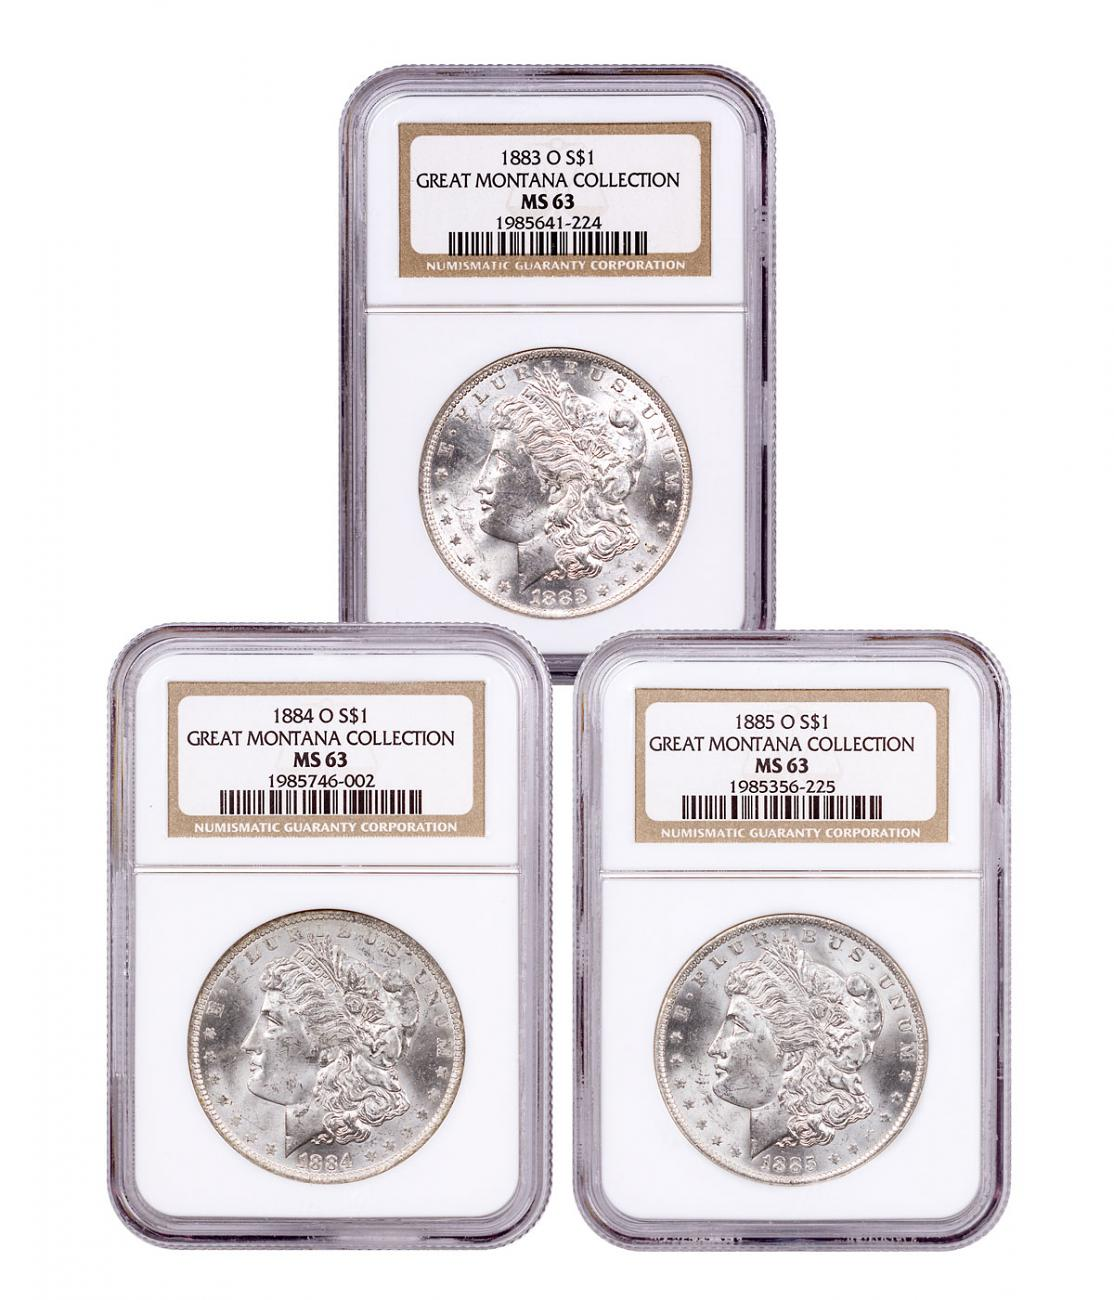 1883-1885-O Silver Great Montana Collection Morgan Dollar NGC MS63 Mammoth Mining Stock Certificate